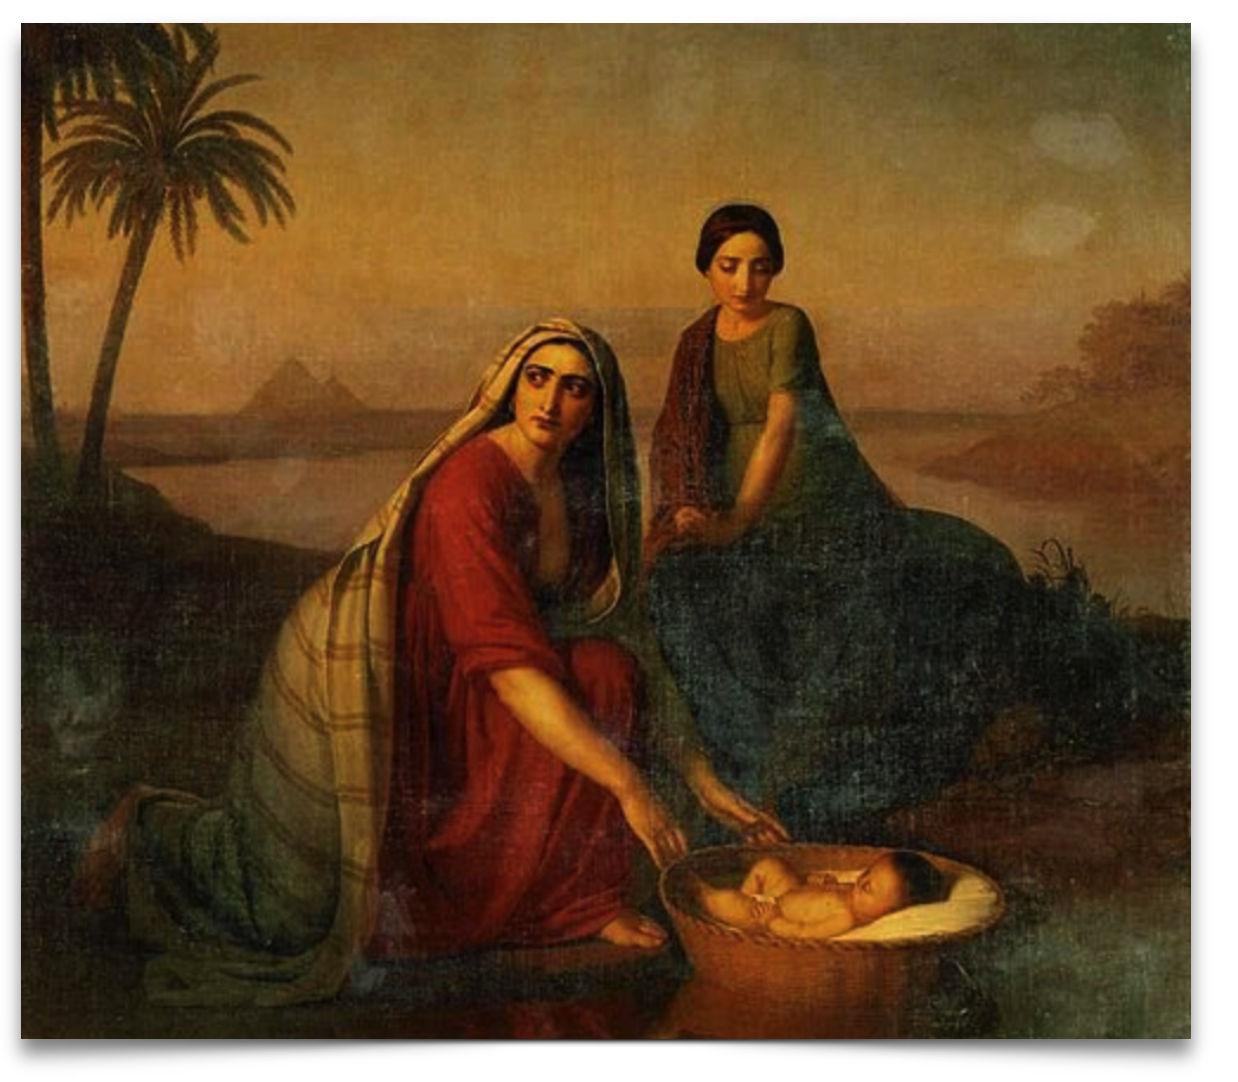 moses-in-basket-painting.png